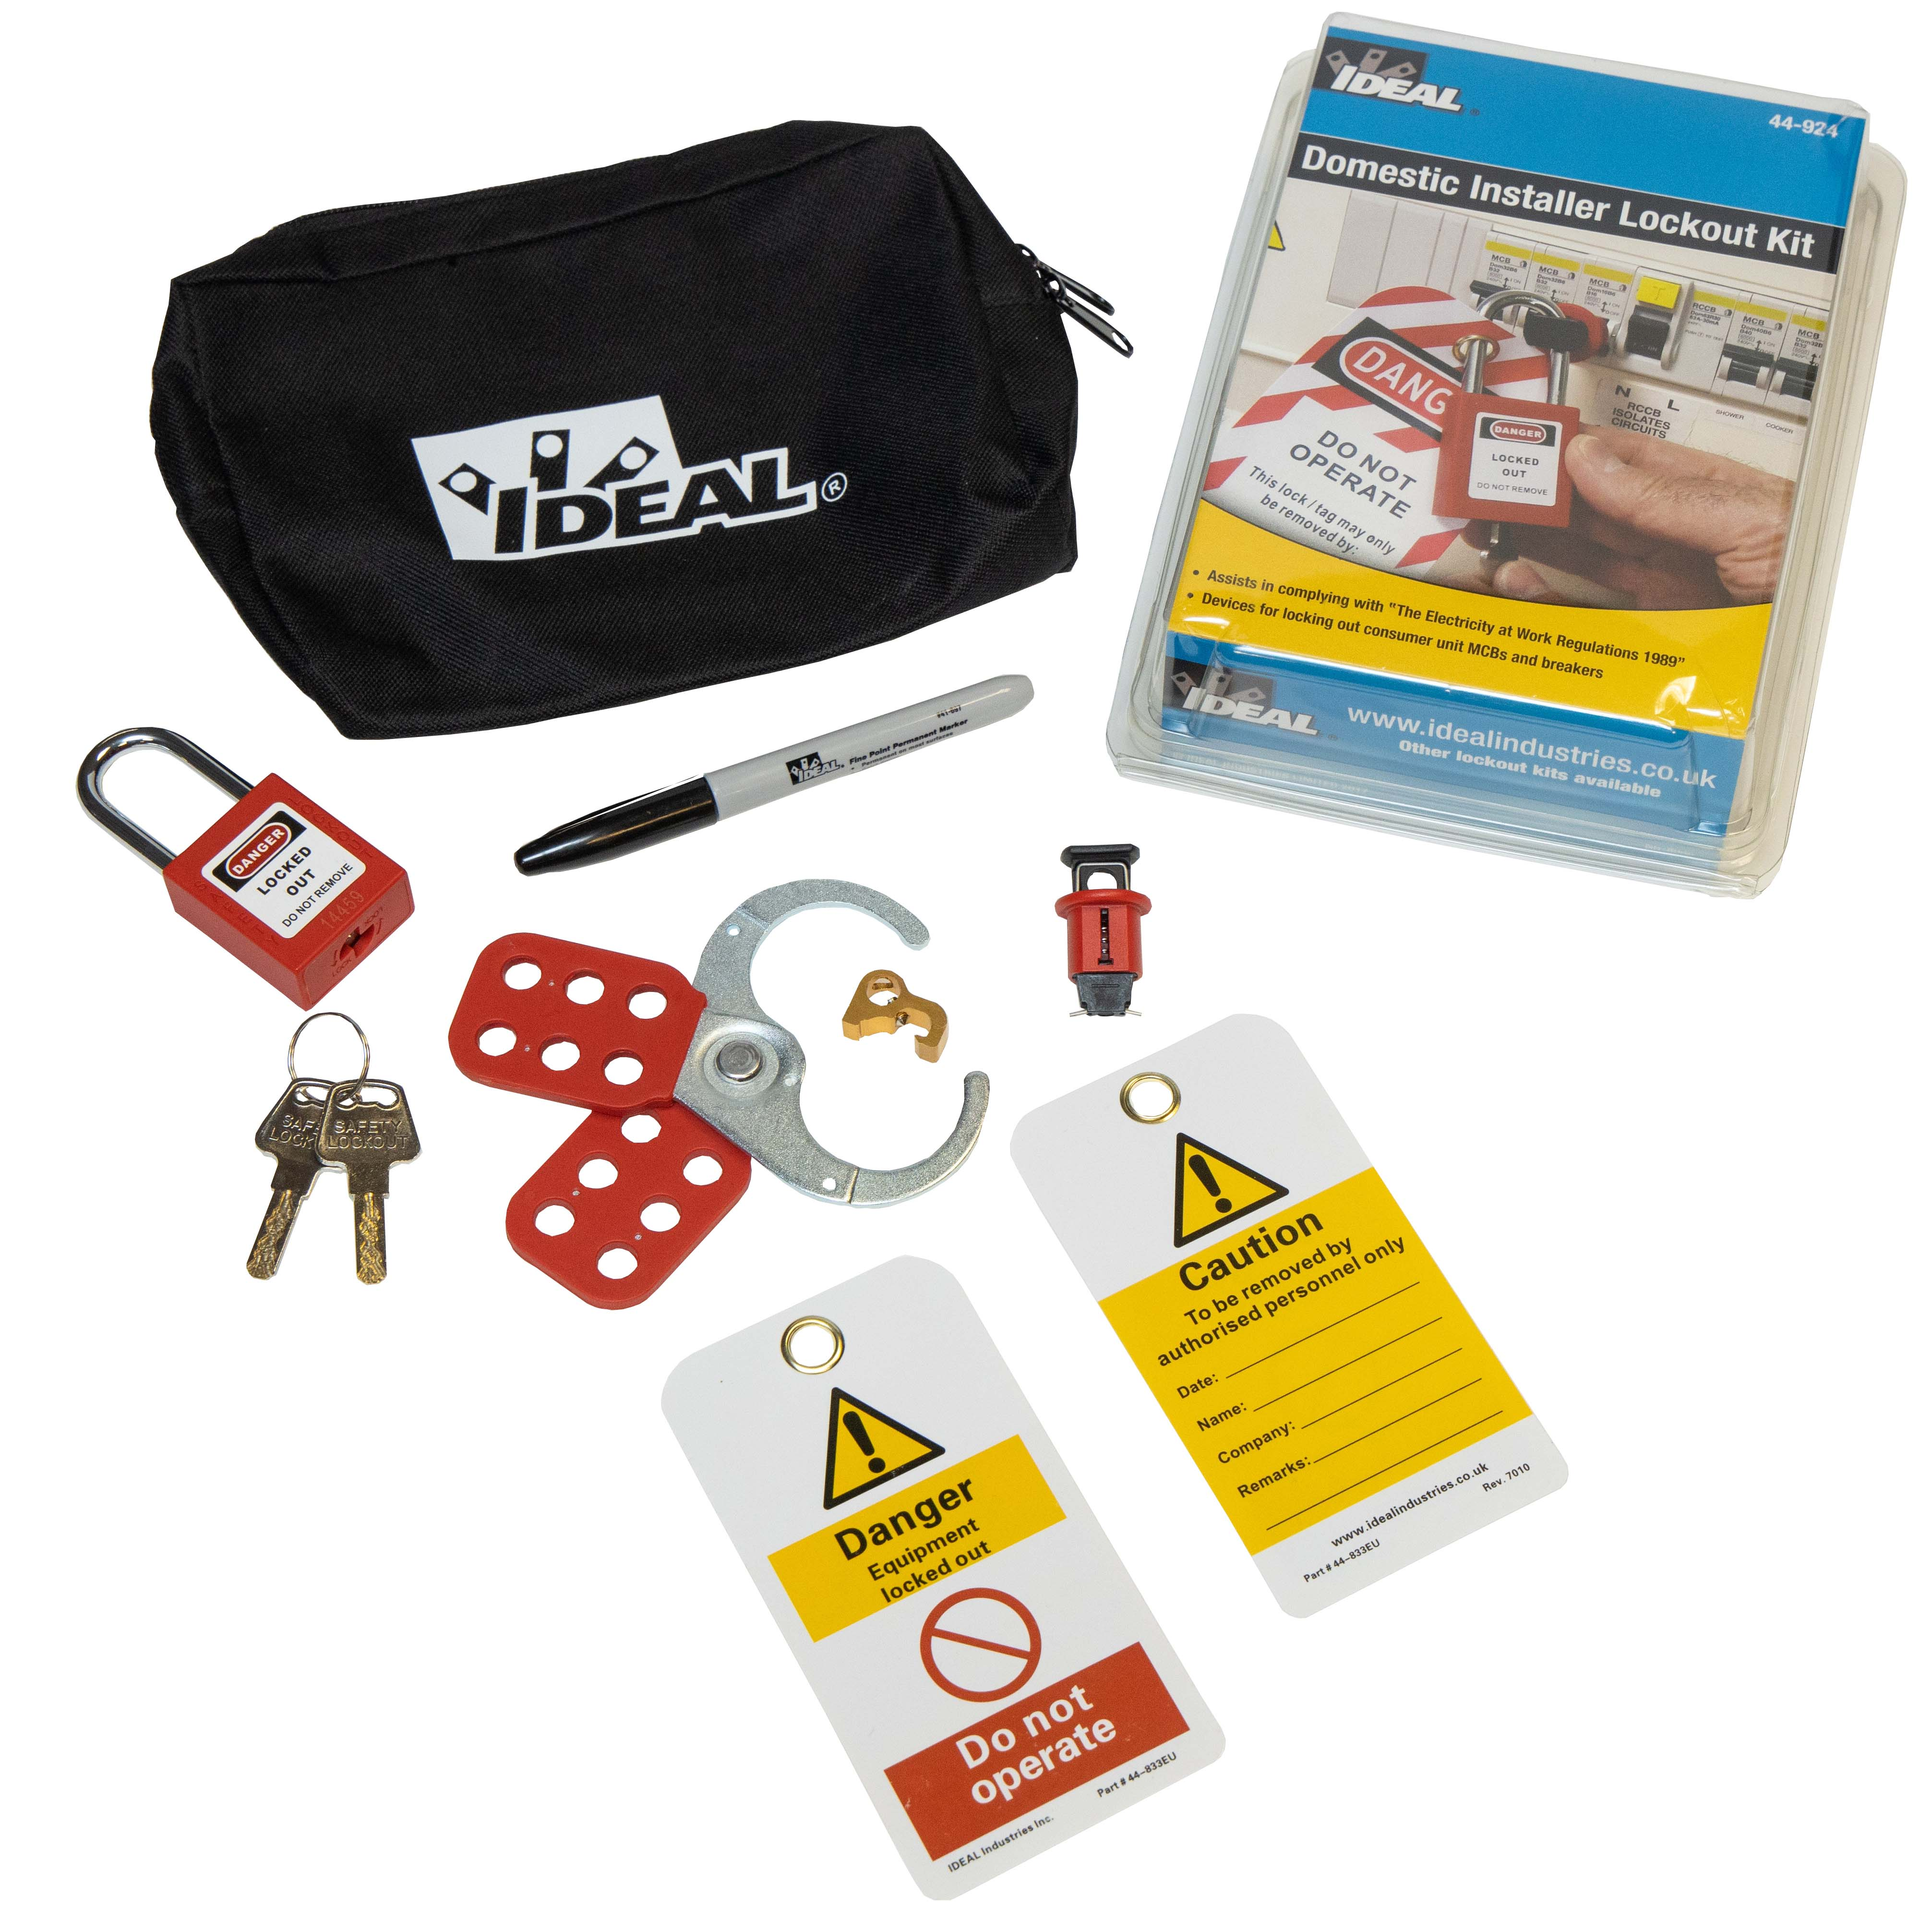 UK DOMESTIC INSTALLER LOTO KIT  44-924